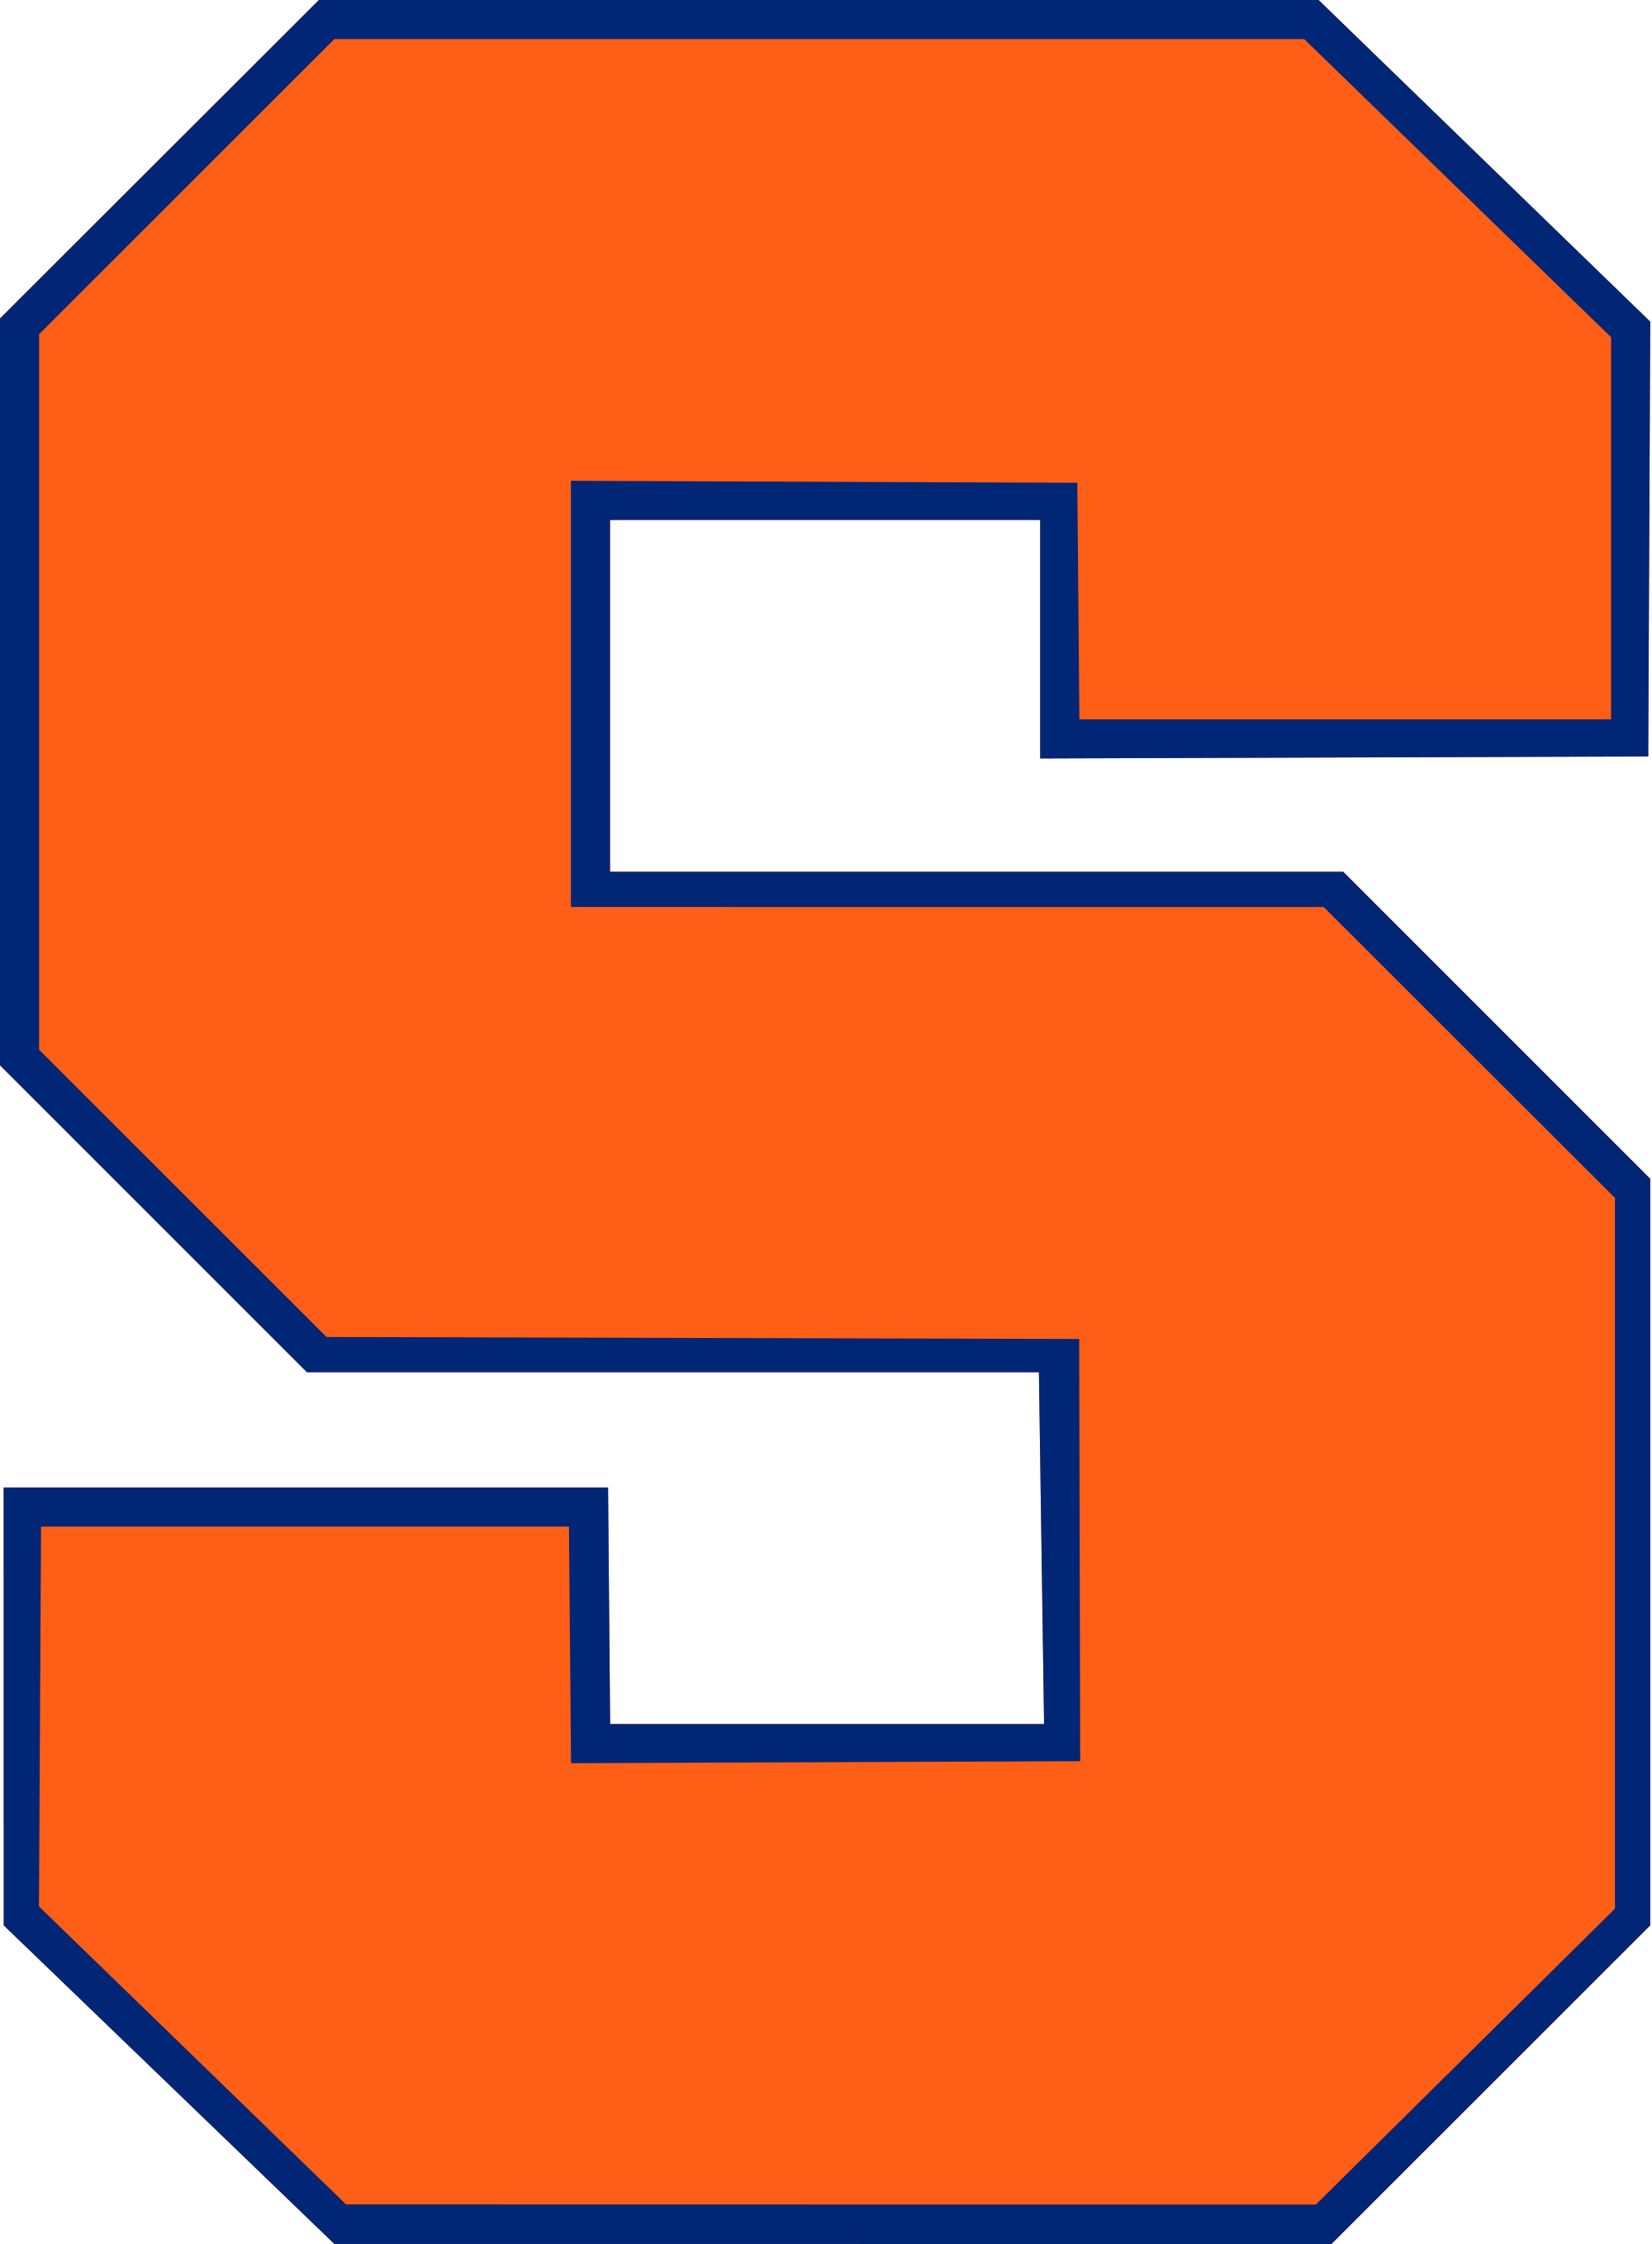 Alumni basketball game clipart png transparent download syracuse university logo - Google Search | Orange | Pinterest ... png transparent download